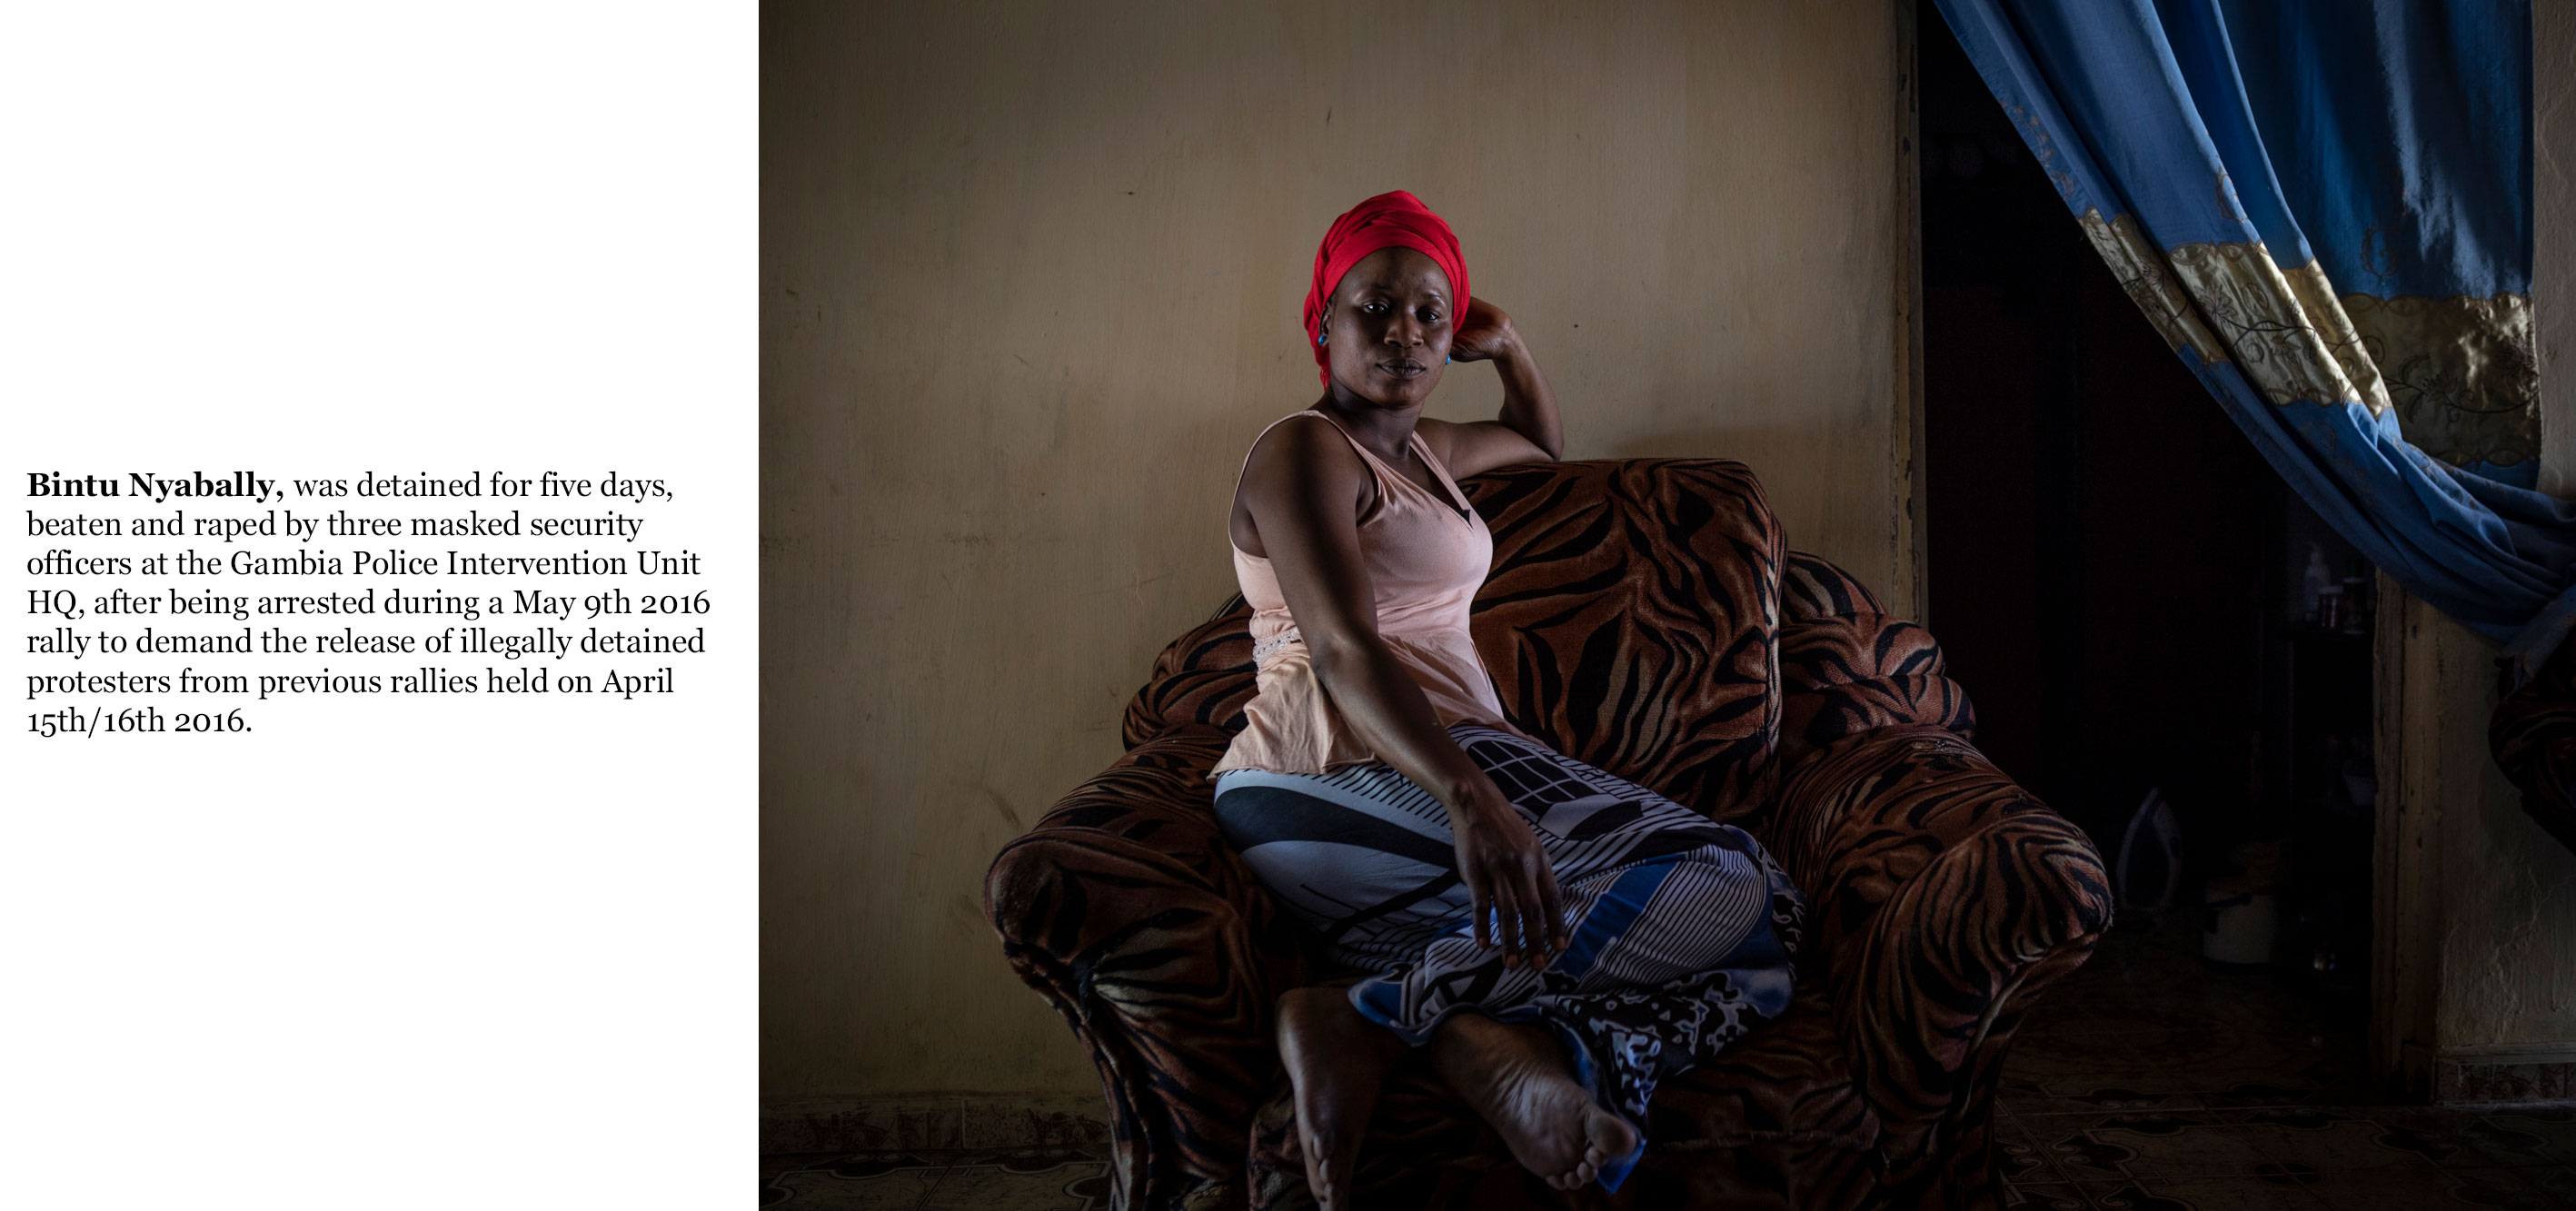 Gambia victims and resisters -Bintu Nyabally arrested and raped by masked security officers, April 2016 - ©jason florio-2785